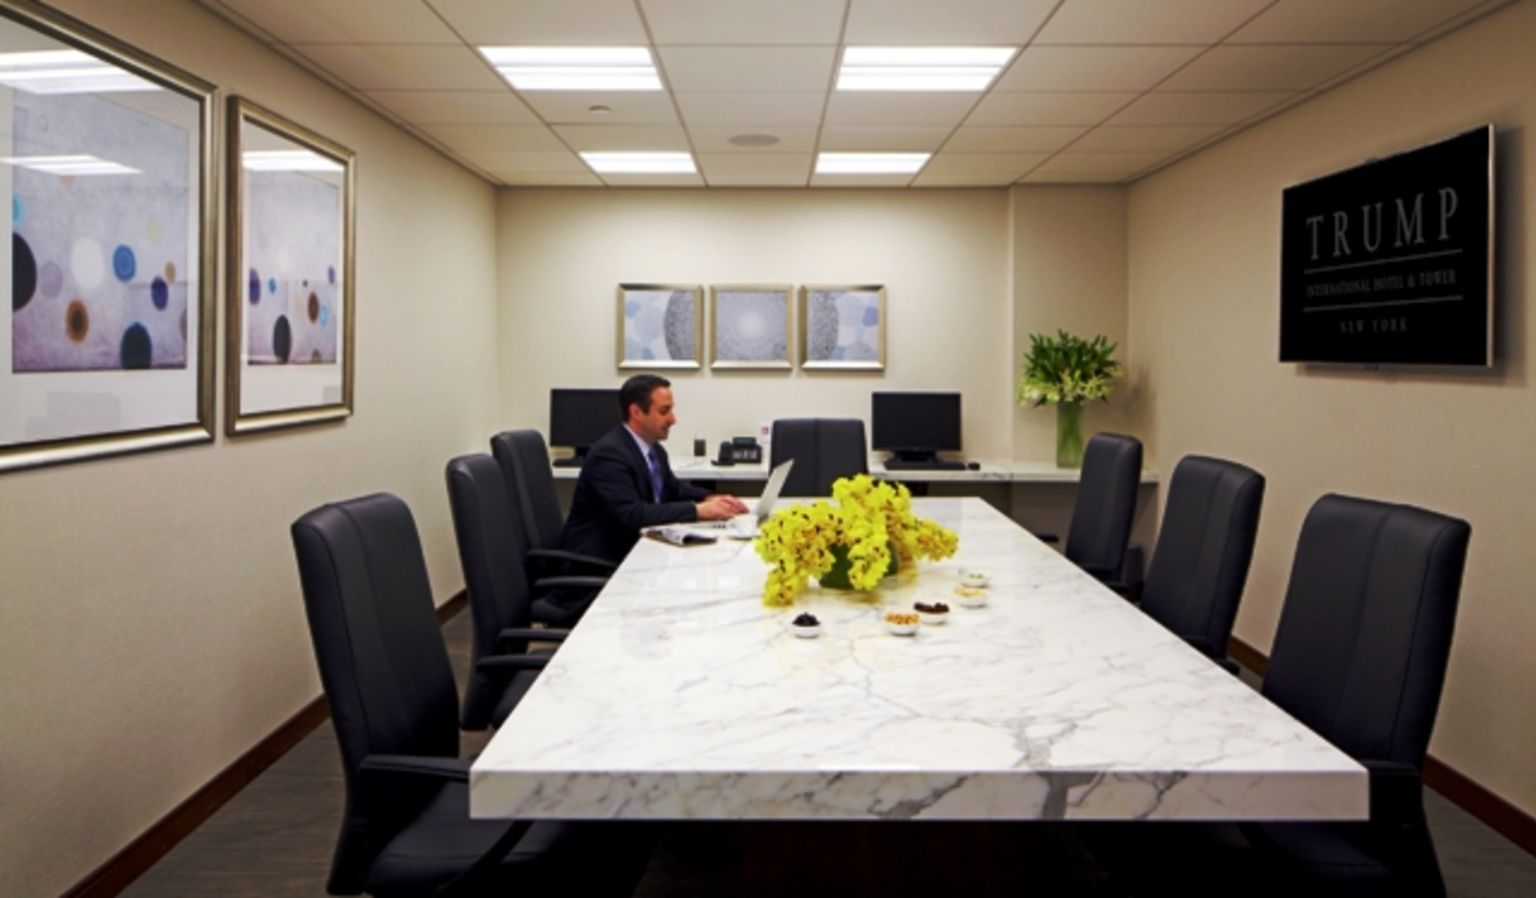 Man Sitting At Meeting Table